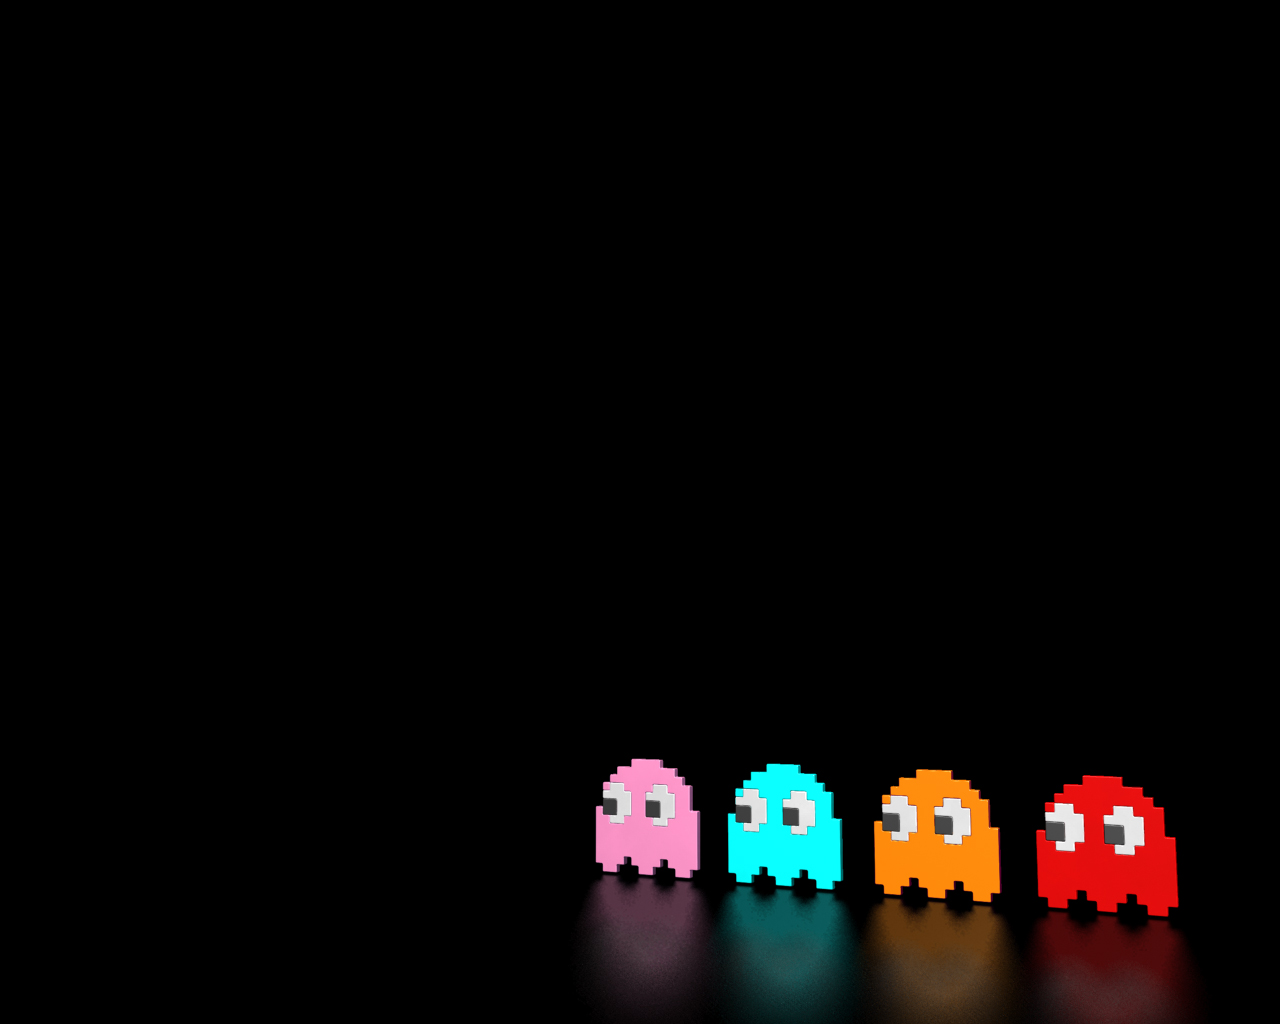 pacman ghost wallpaper background pink blue orange red classic arcade 1280x1024